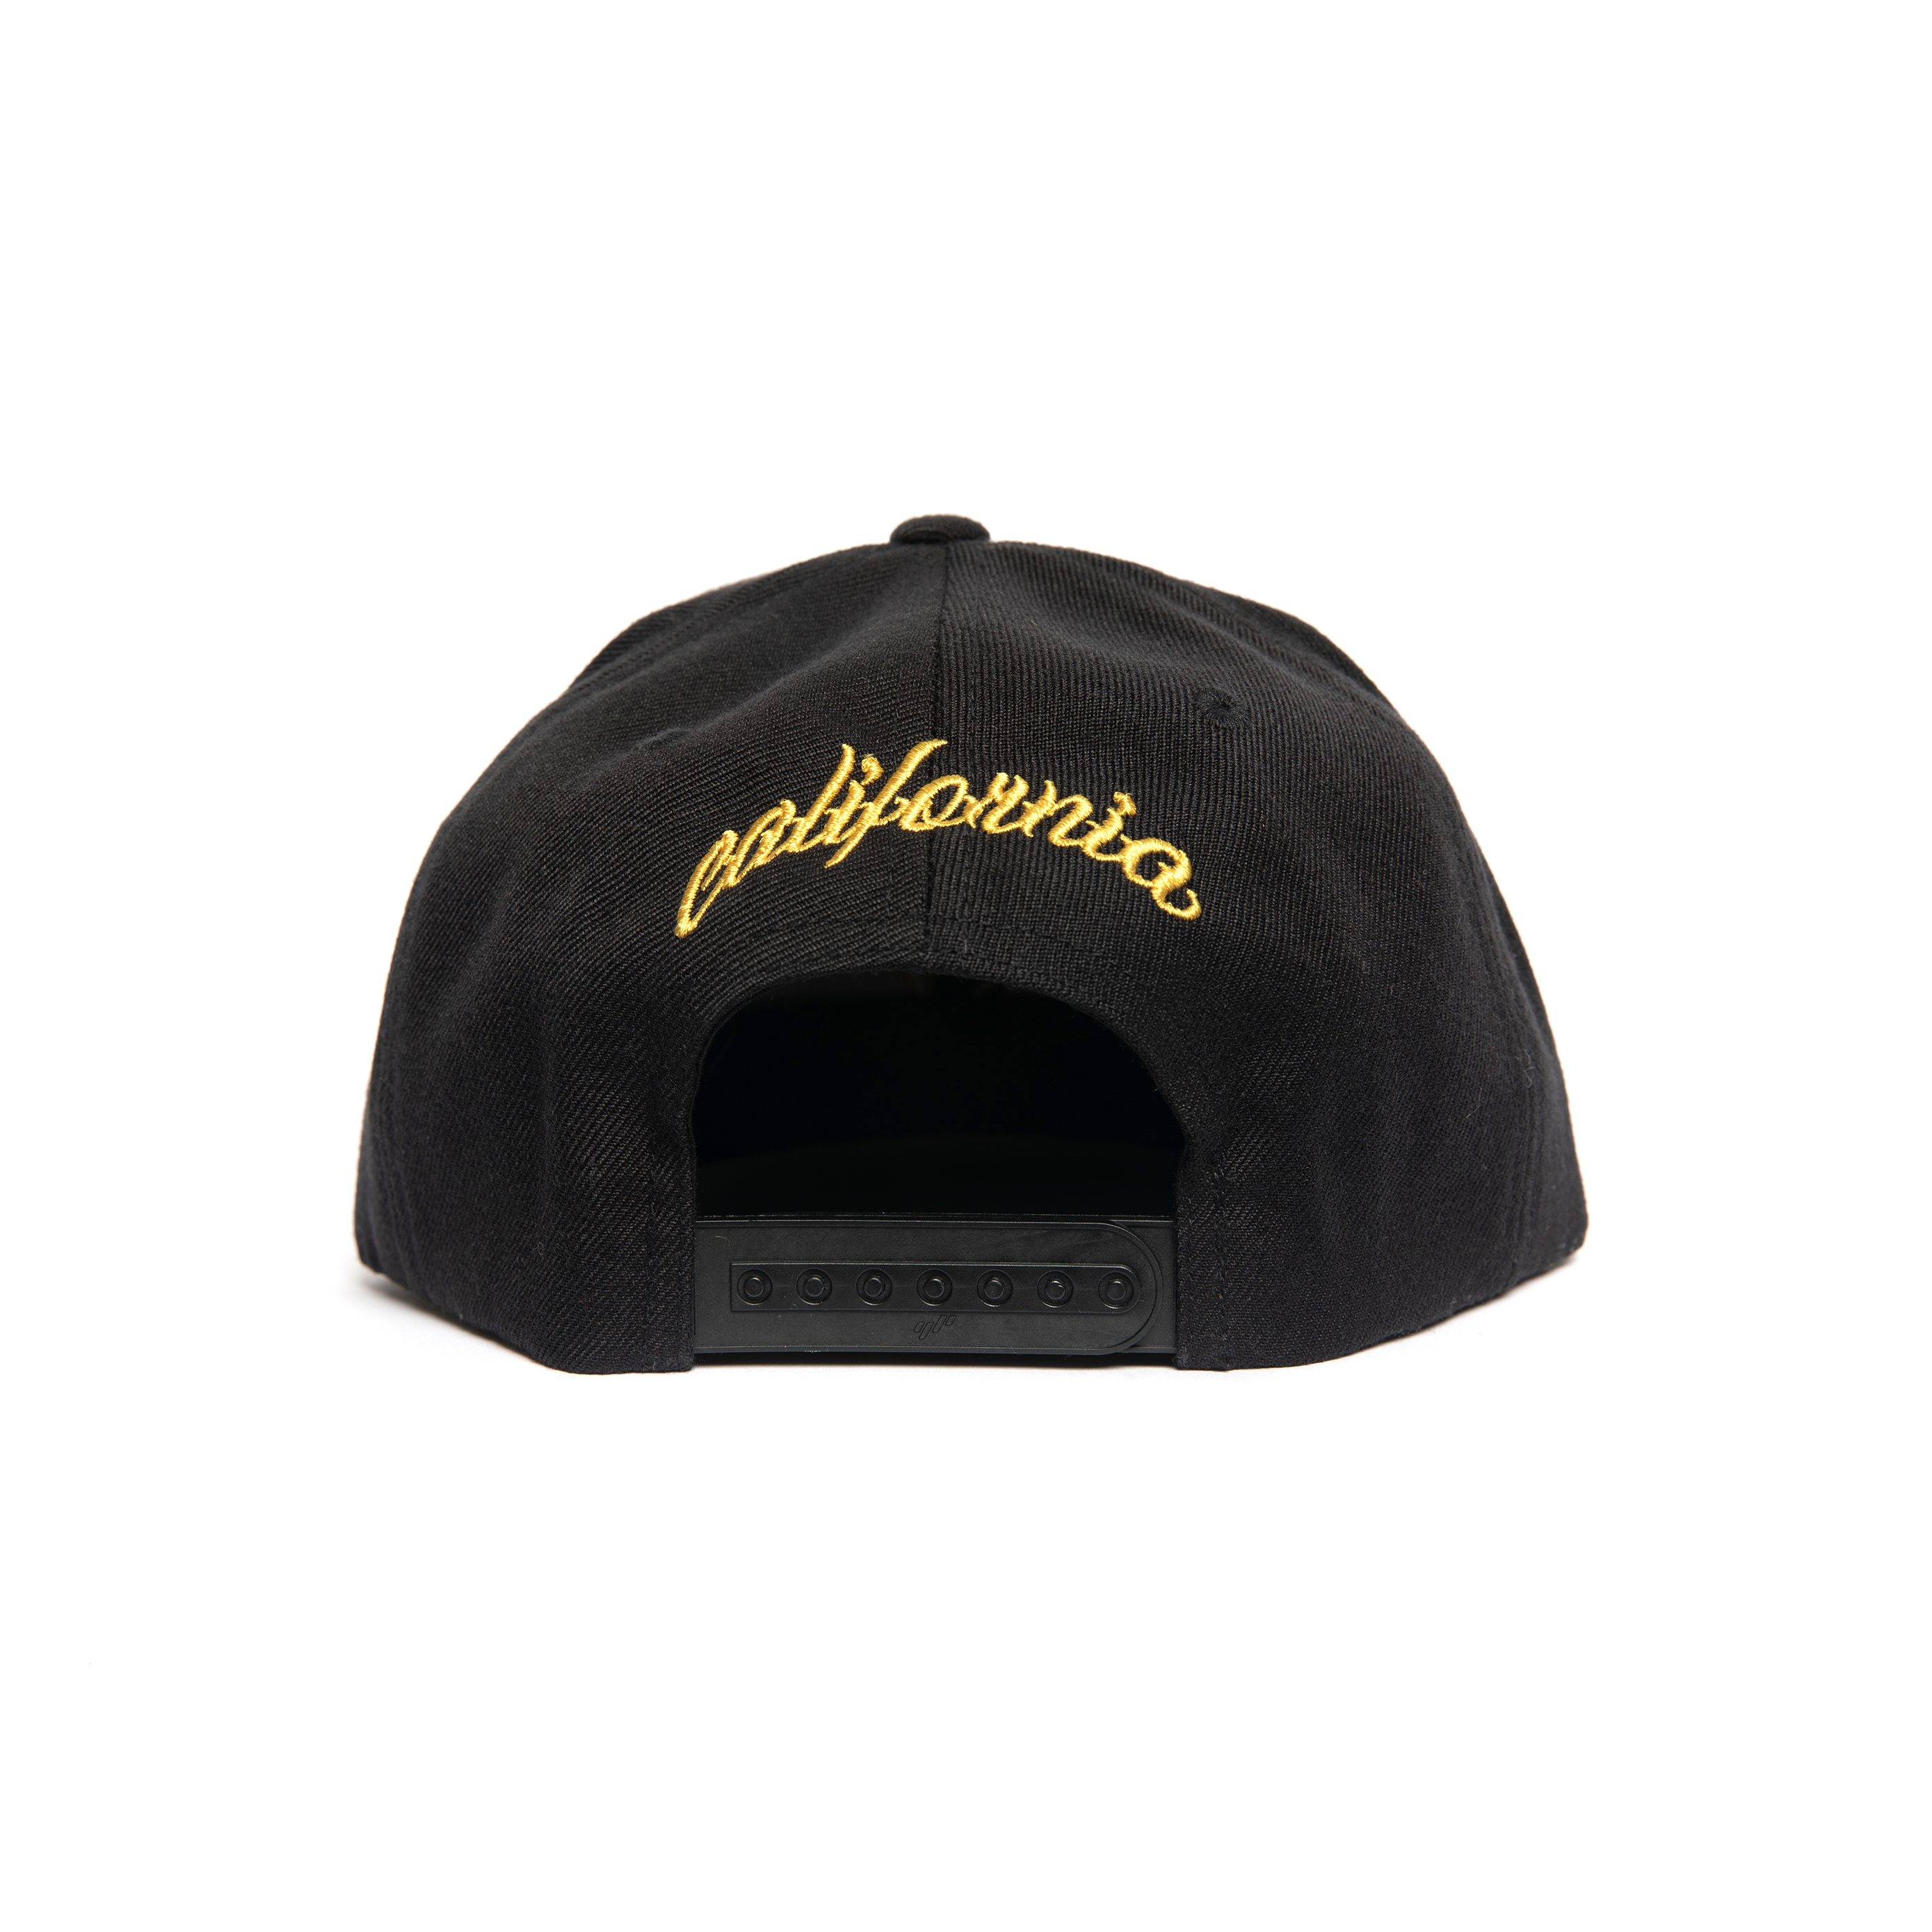 LOGO SNAP - BLACK